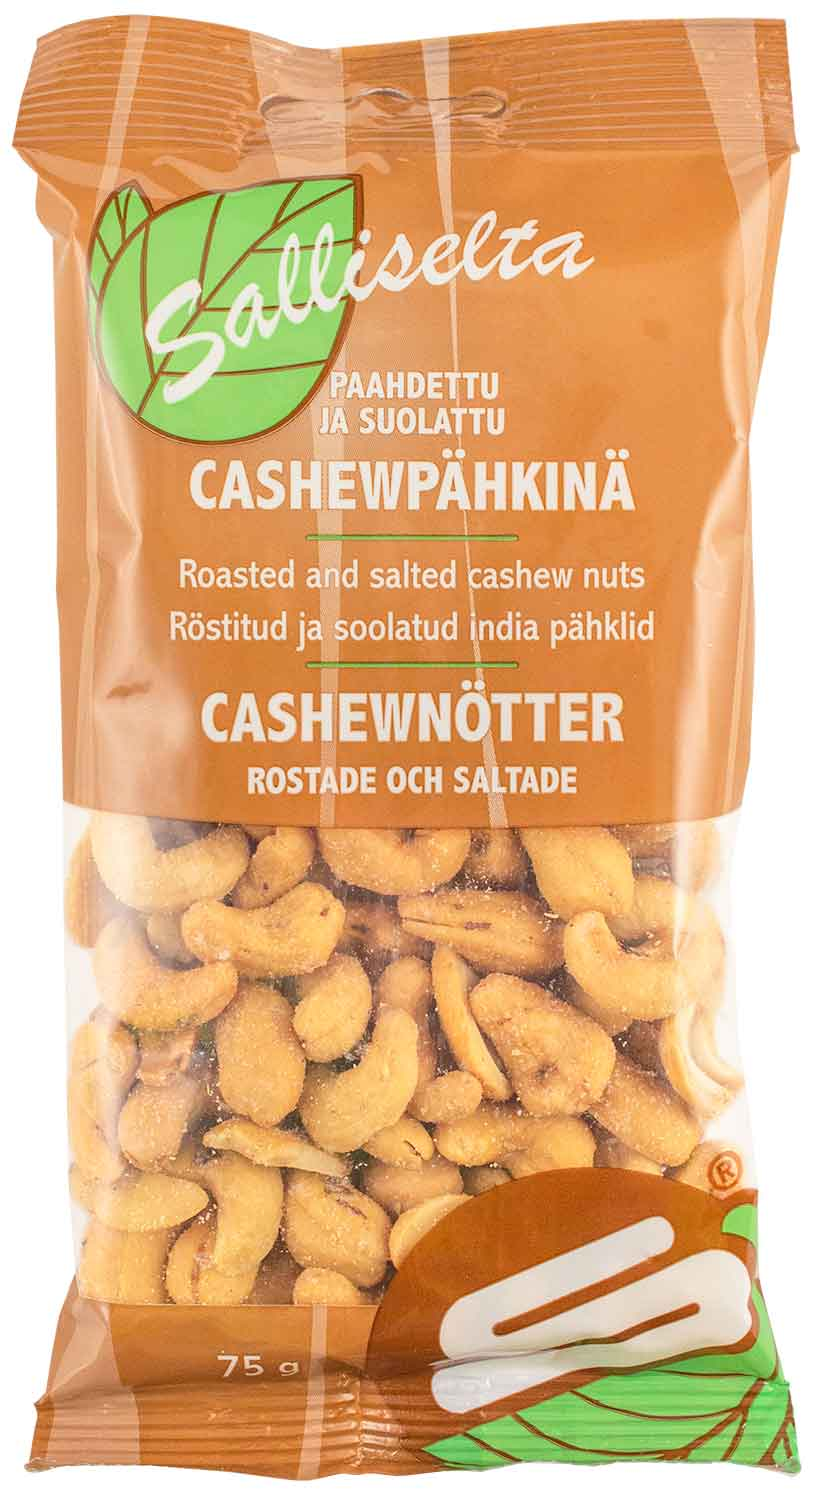 Cashew nuts roasted and salted 75g